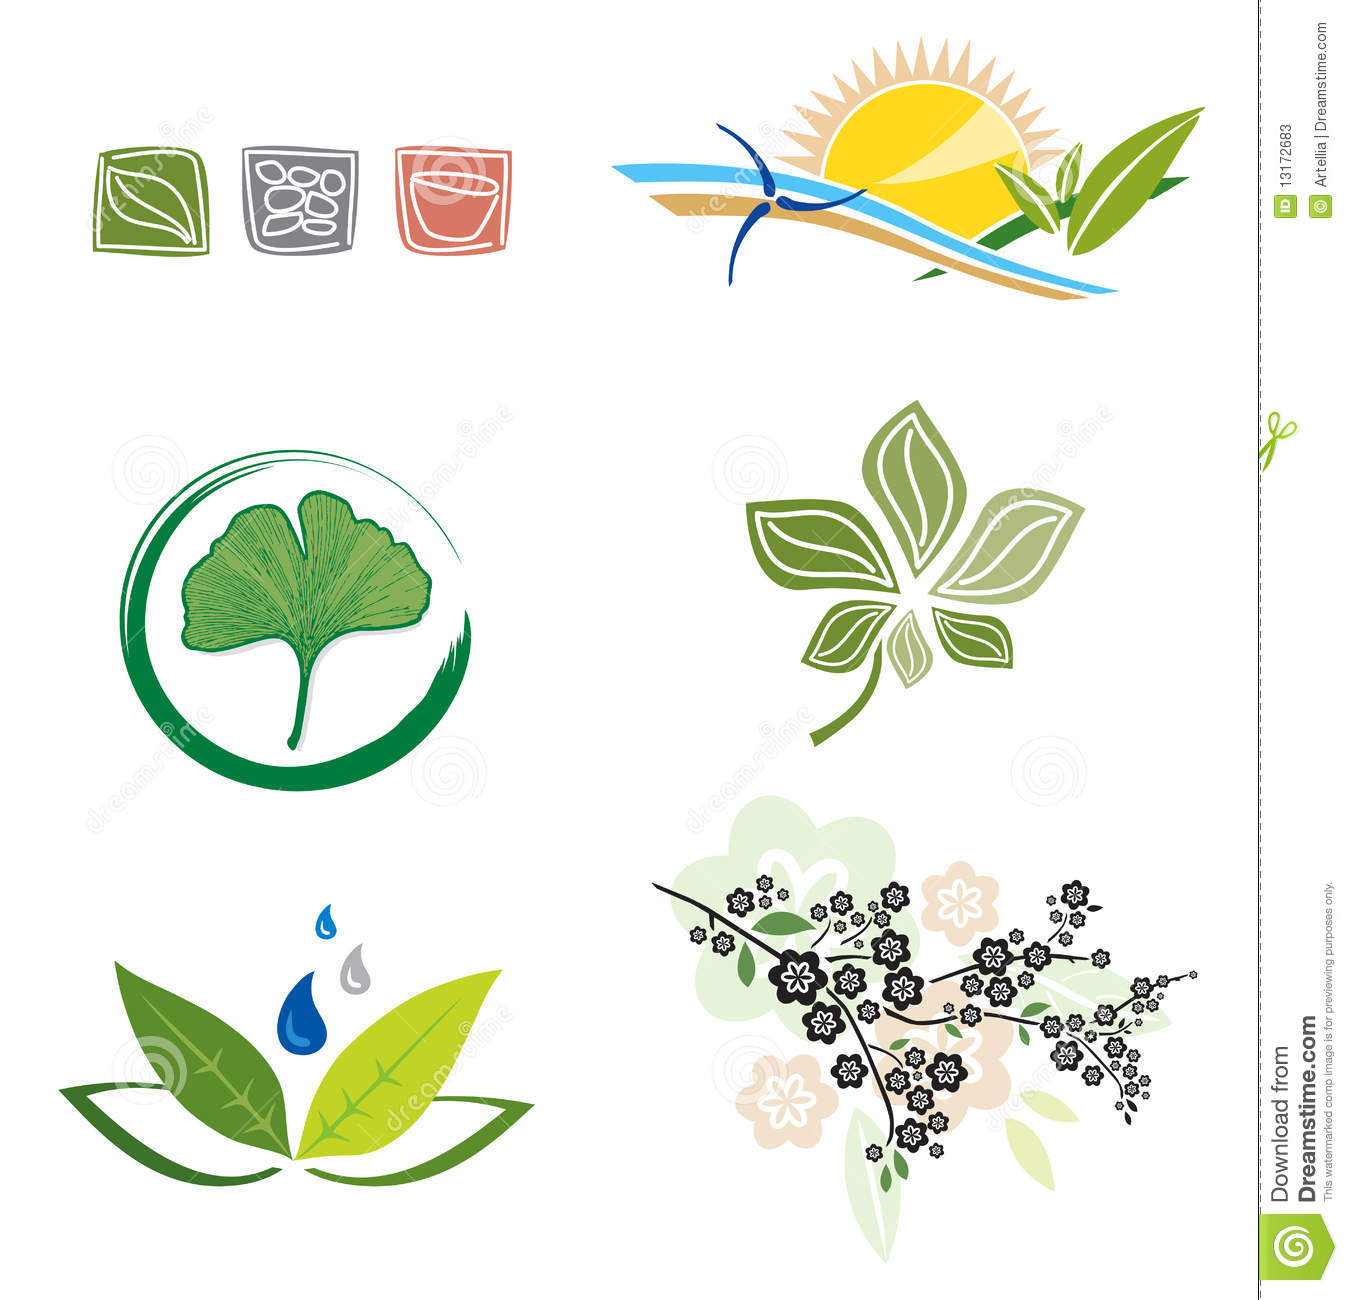 Set of icons for logo design stock photos image 13172683 for Landscape design icons